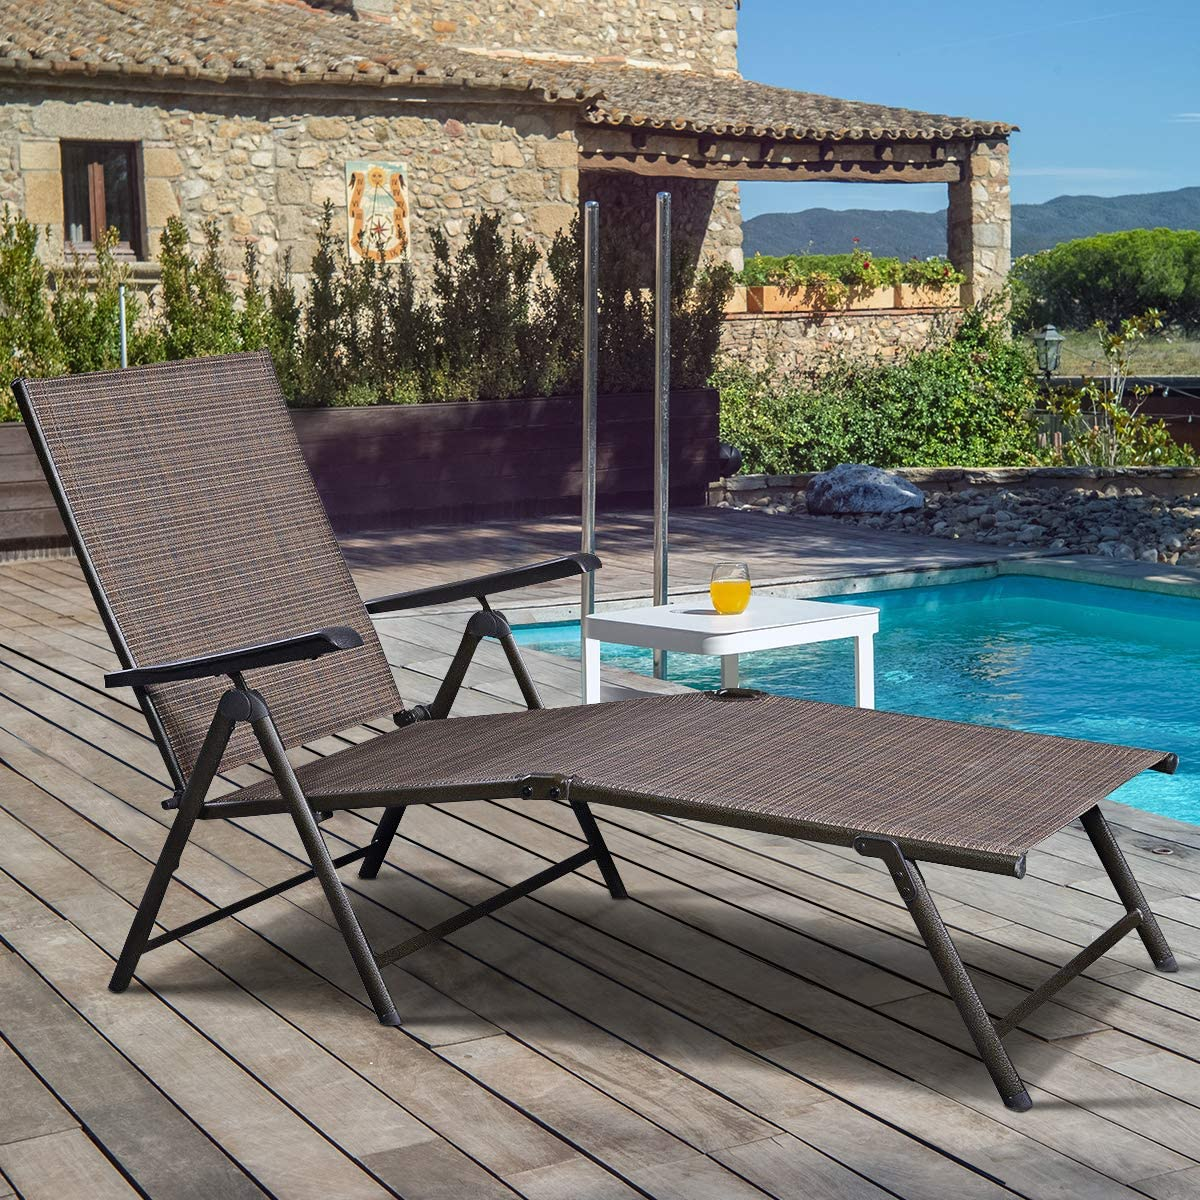 Casart Chaise Lounge Chair, Outdoor Adjustable Lounge Recliner for Poolside, Garden and Patio